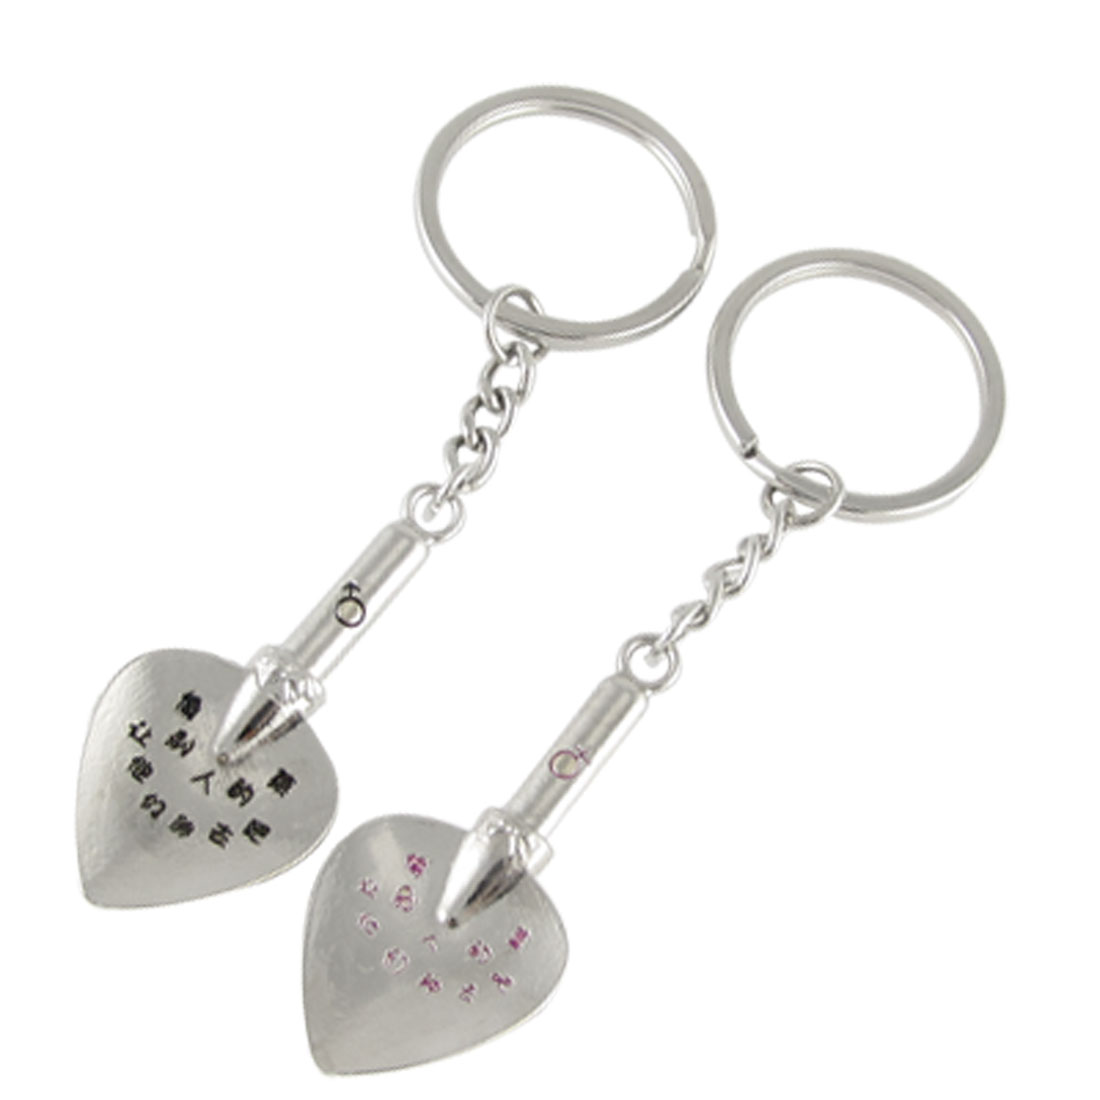 2 Pcs Silver Tone Alloy Male Female Spade Style Keychain